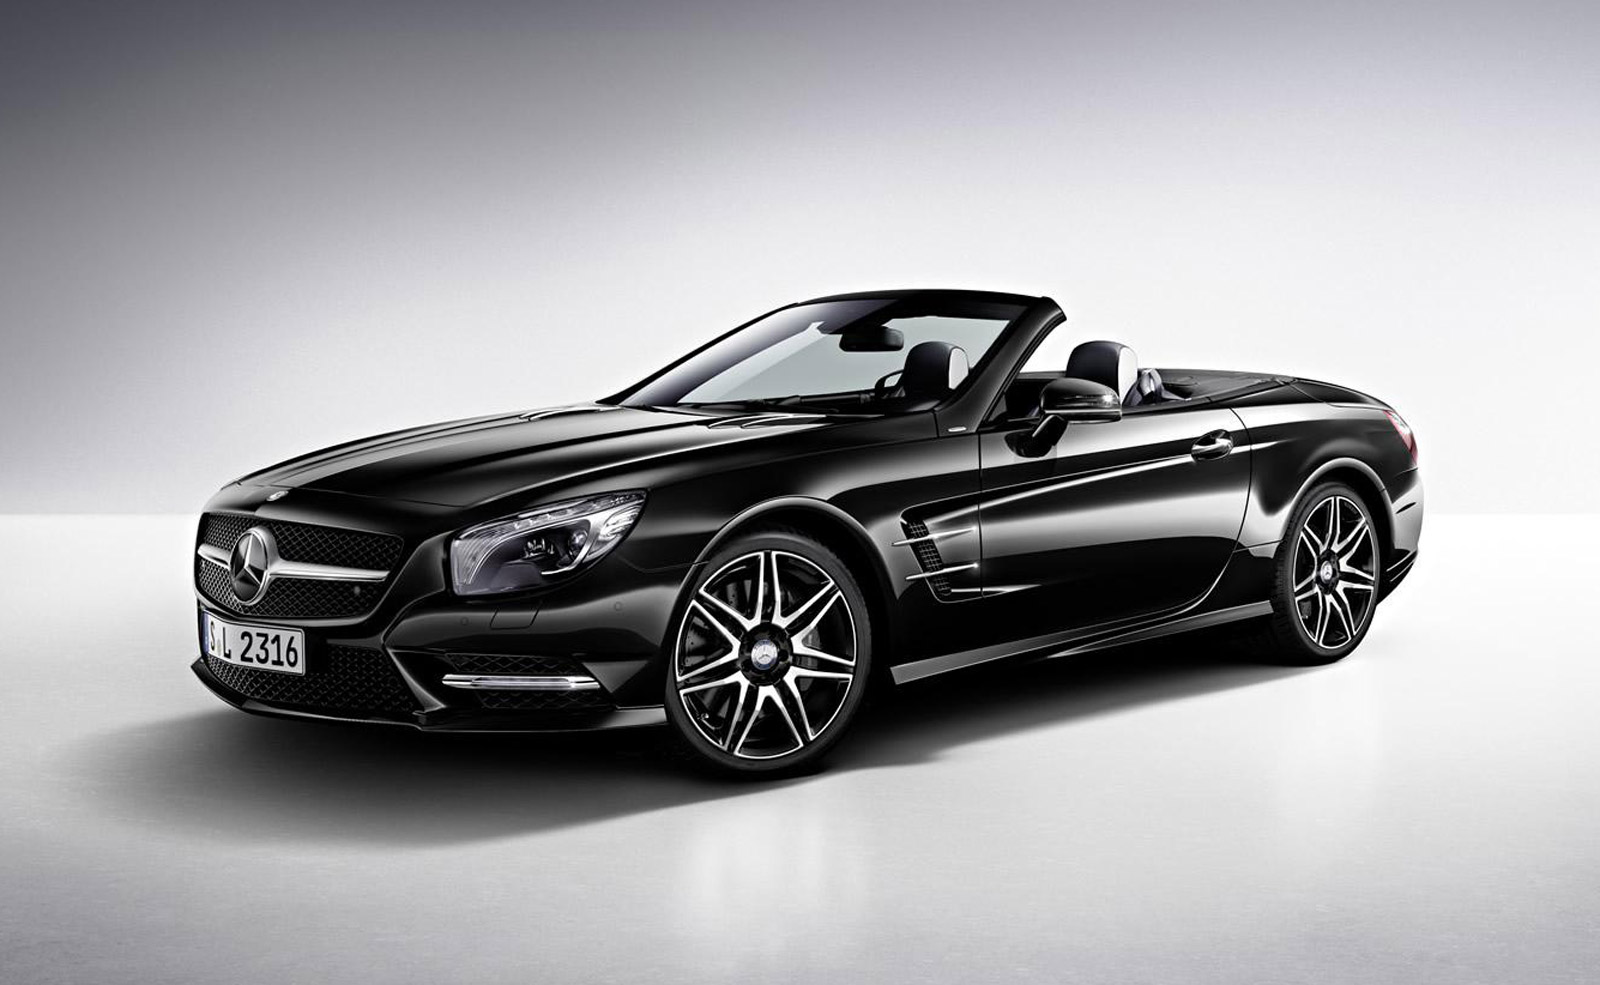 2015 mercedes sl class sees price drop with new v 6 variant for Mercedes benz sl price